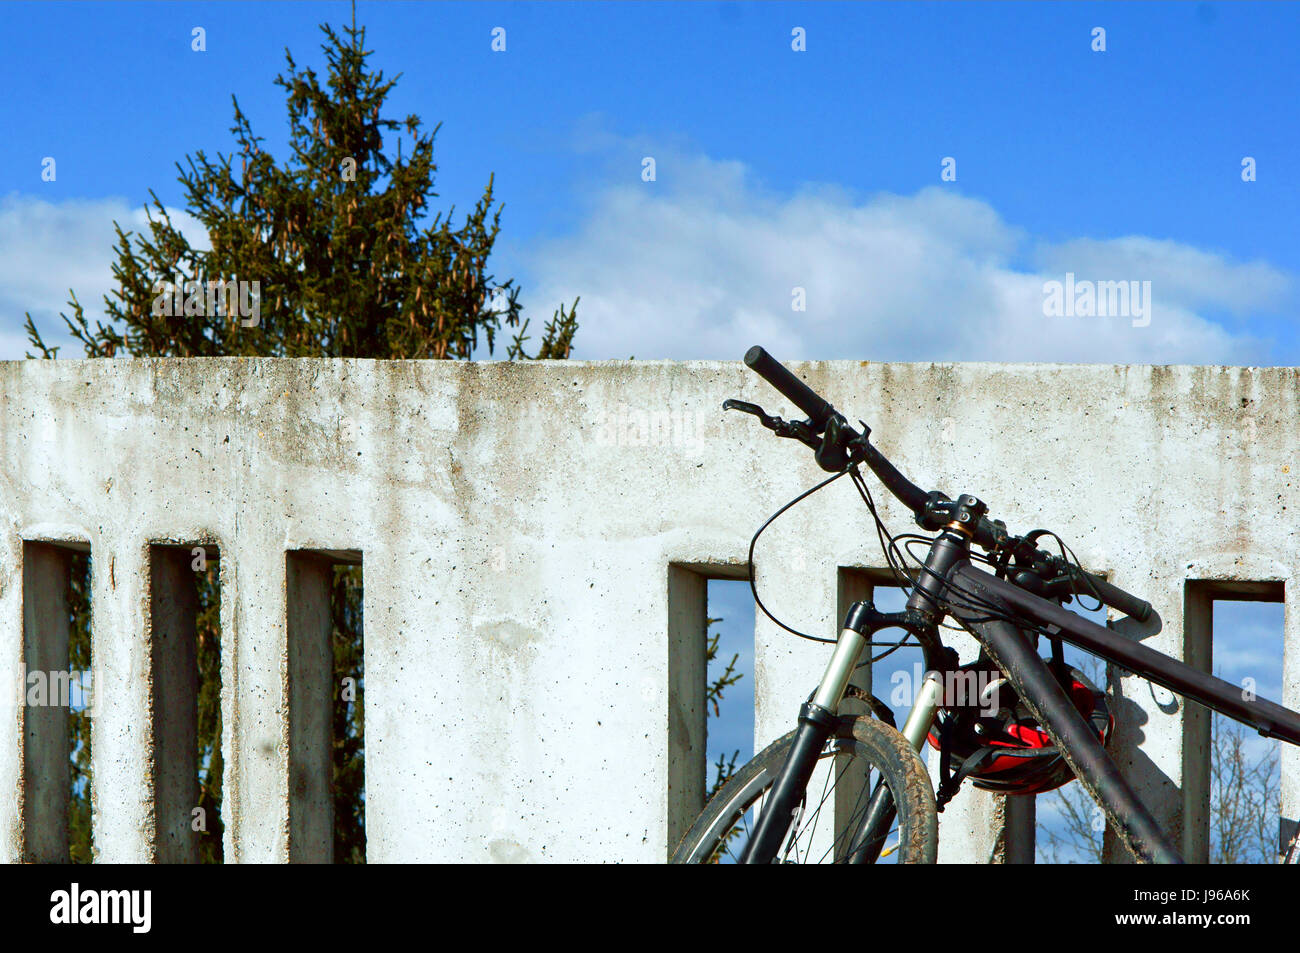 ride, up high, tree, Bicycle, wall, concrete, fencing - Stock Image